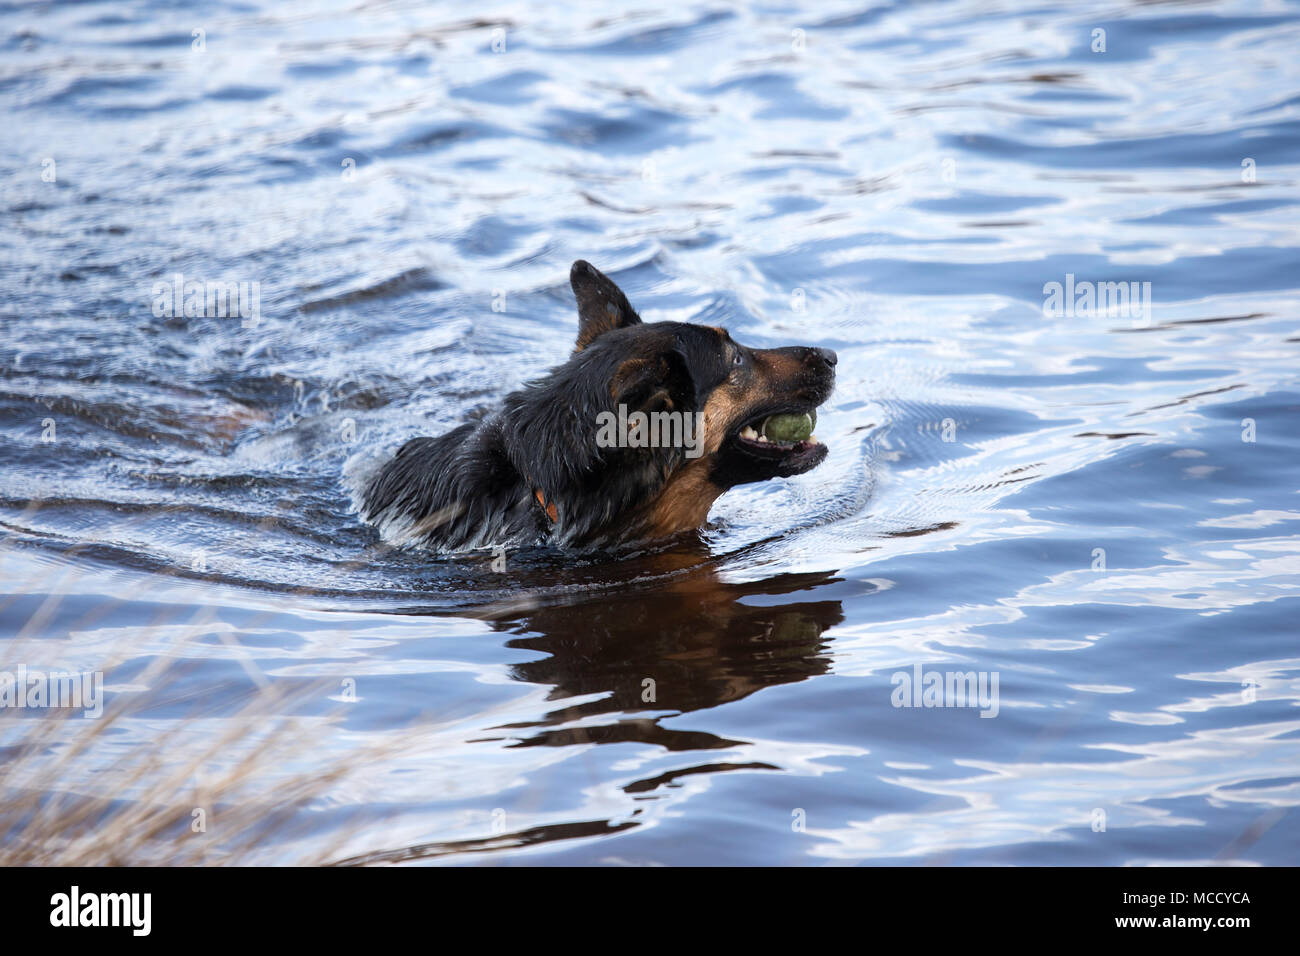 German shepherd dog, Alsatian, Canis lupus familiaris retrieving a tennis ball from a West Yorkshire lake Stock Photo